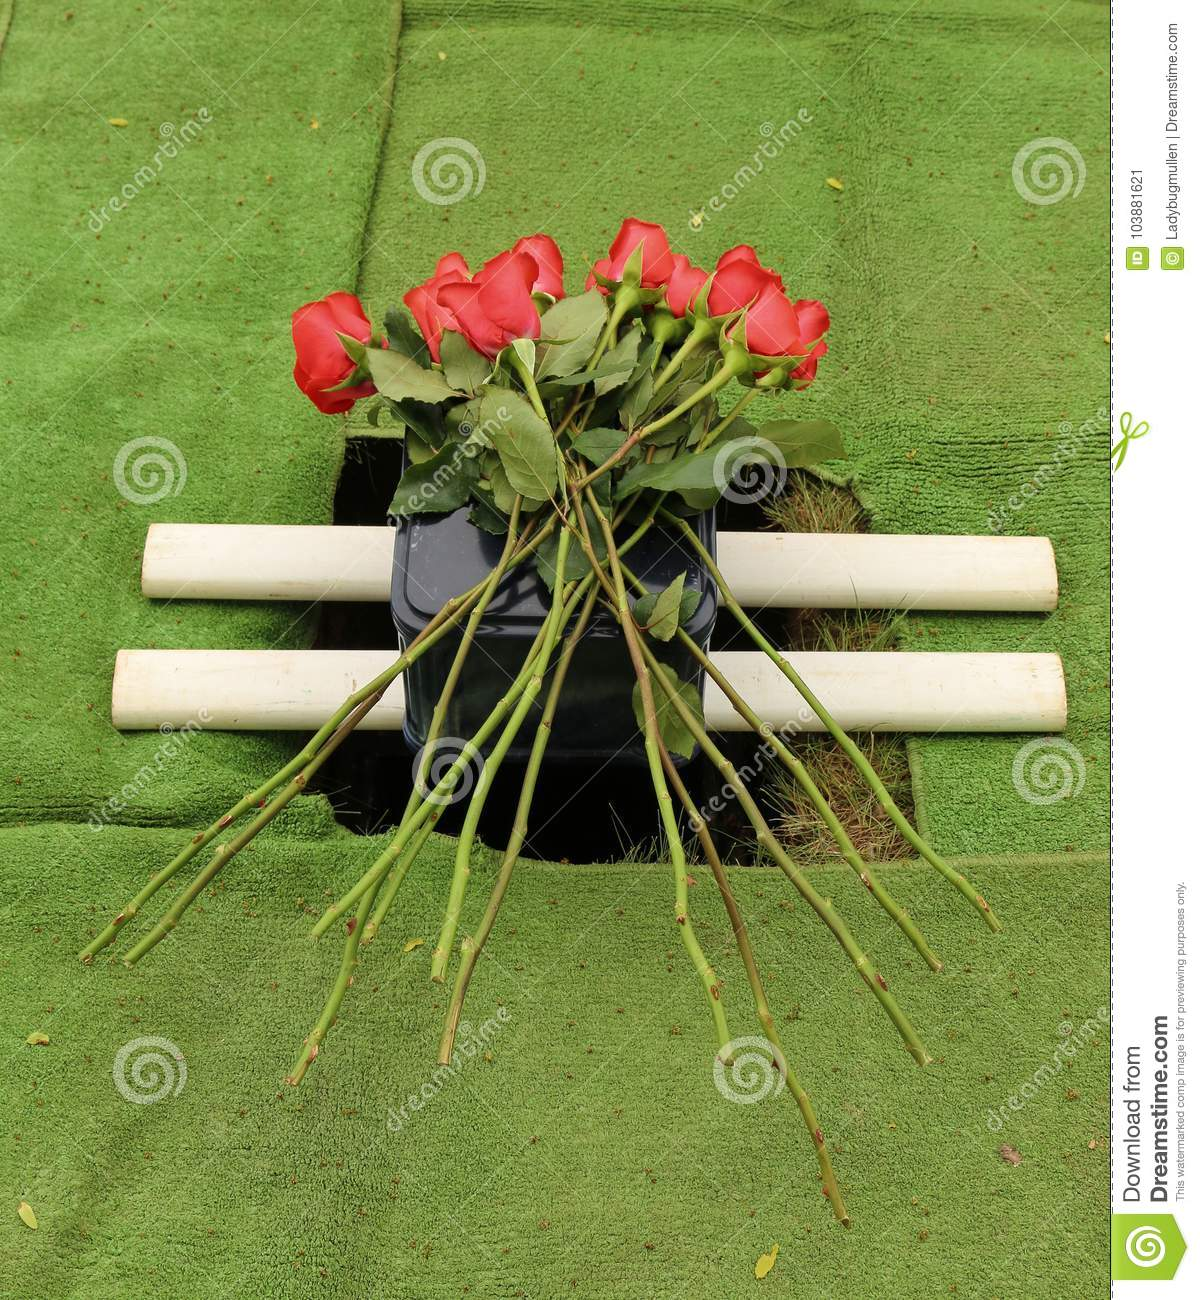 Cremation Urn For Burial With Red Roses Stock Image - Image